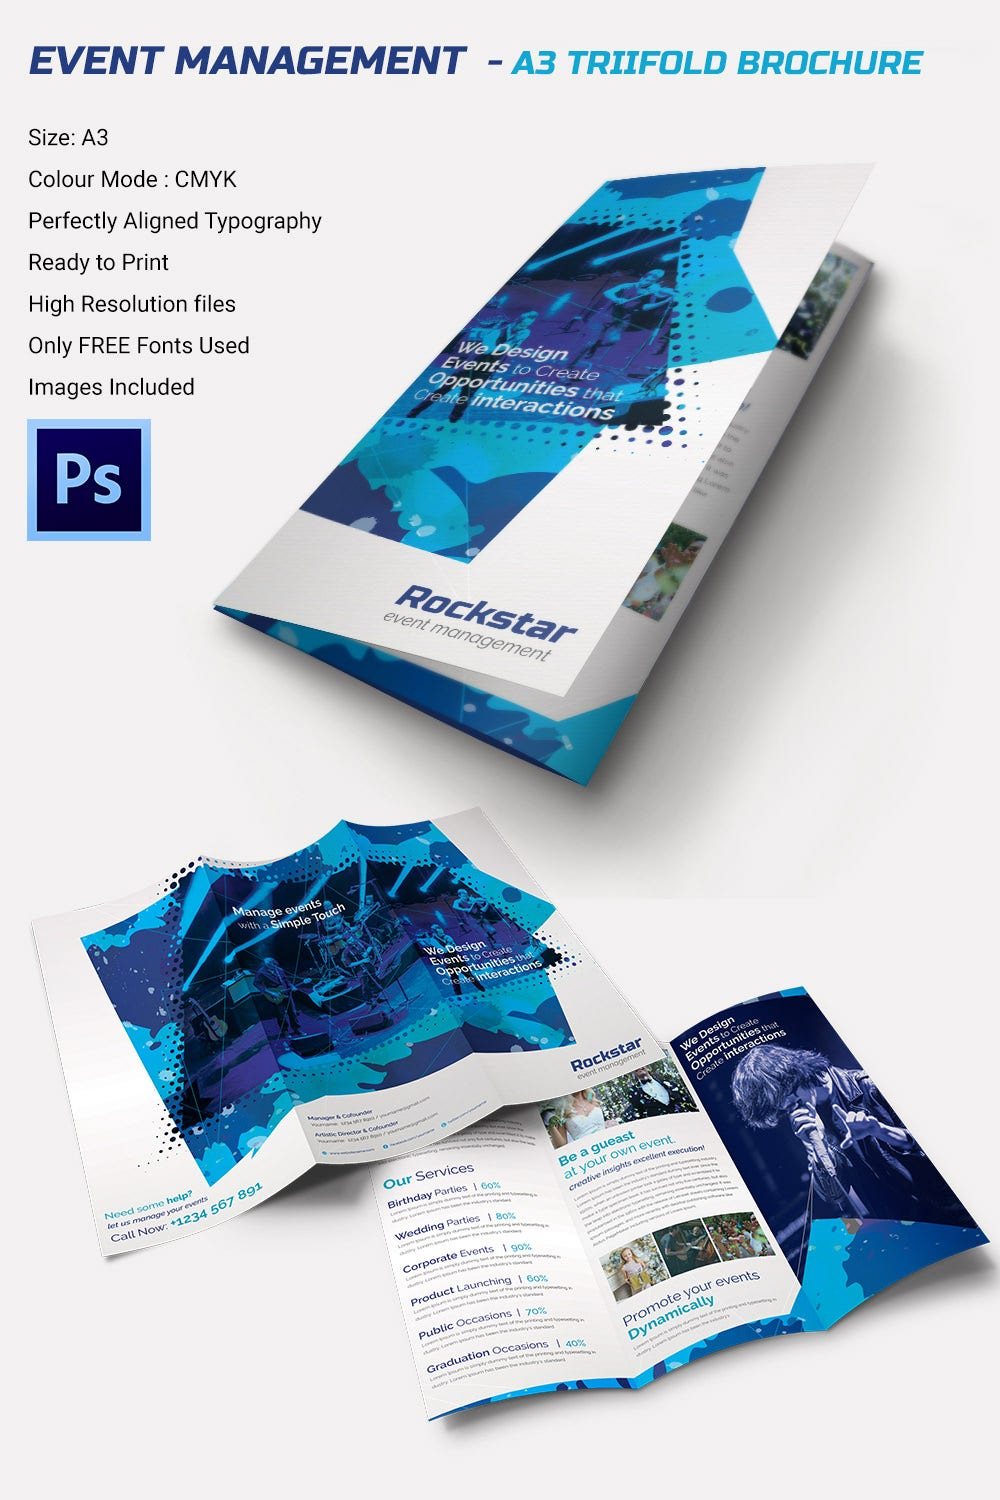 16 event brochure templates psd designs free for Brochure folding templates